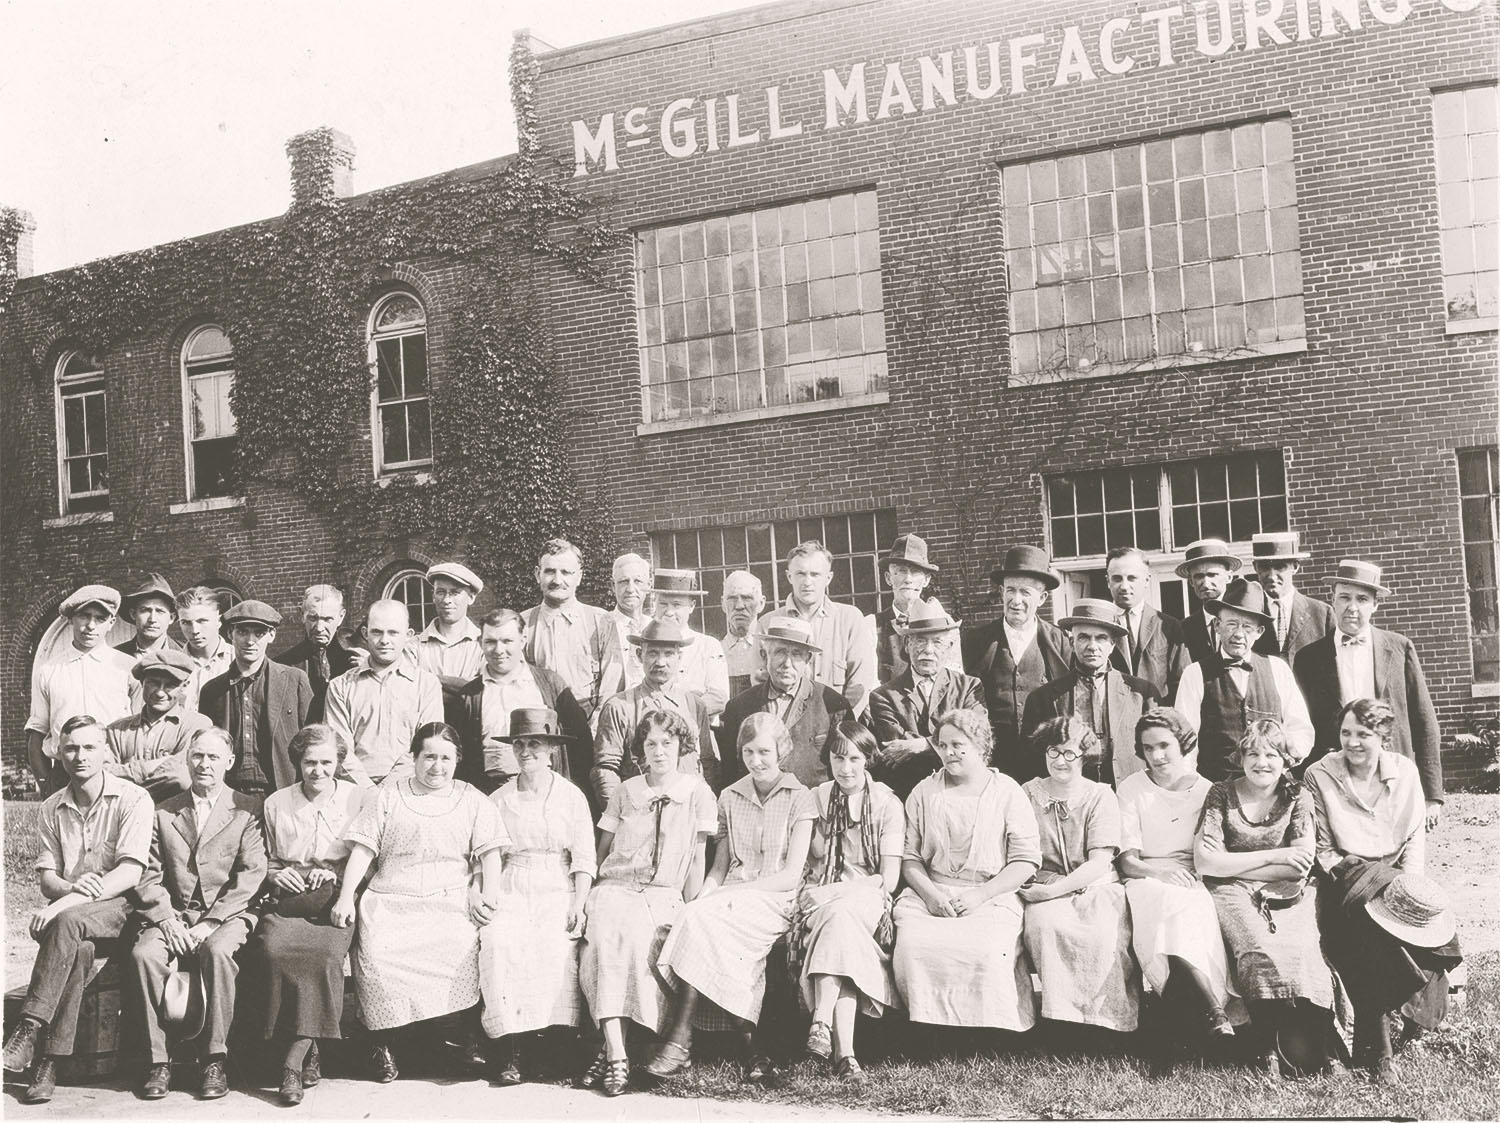 Employees of McGill Manufacturing Company | June 21, 1924